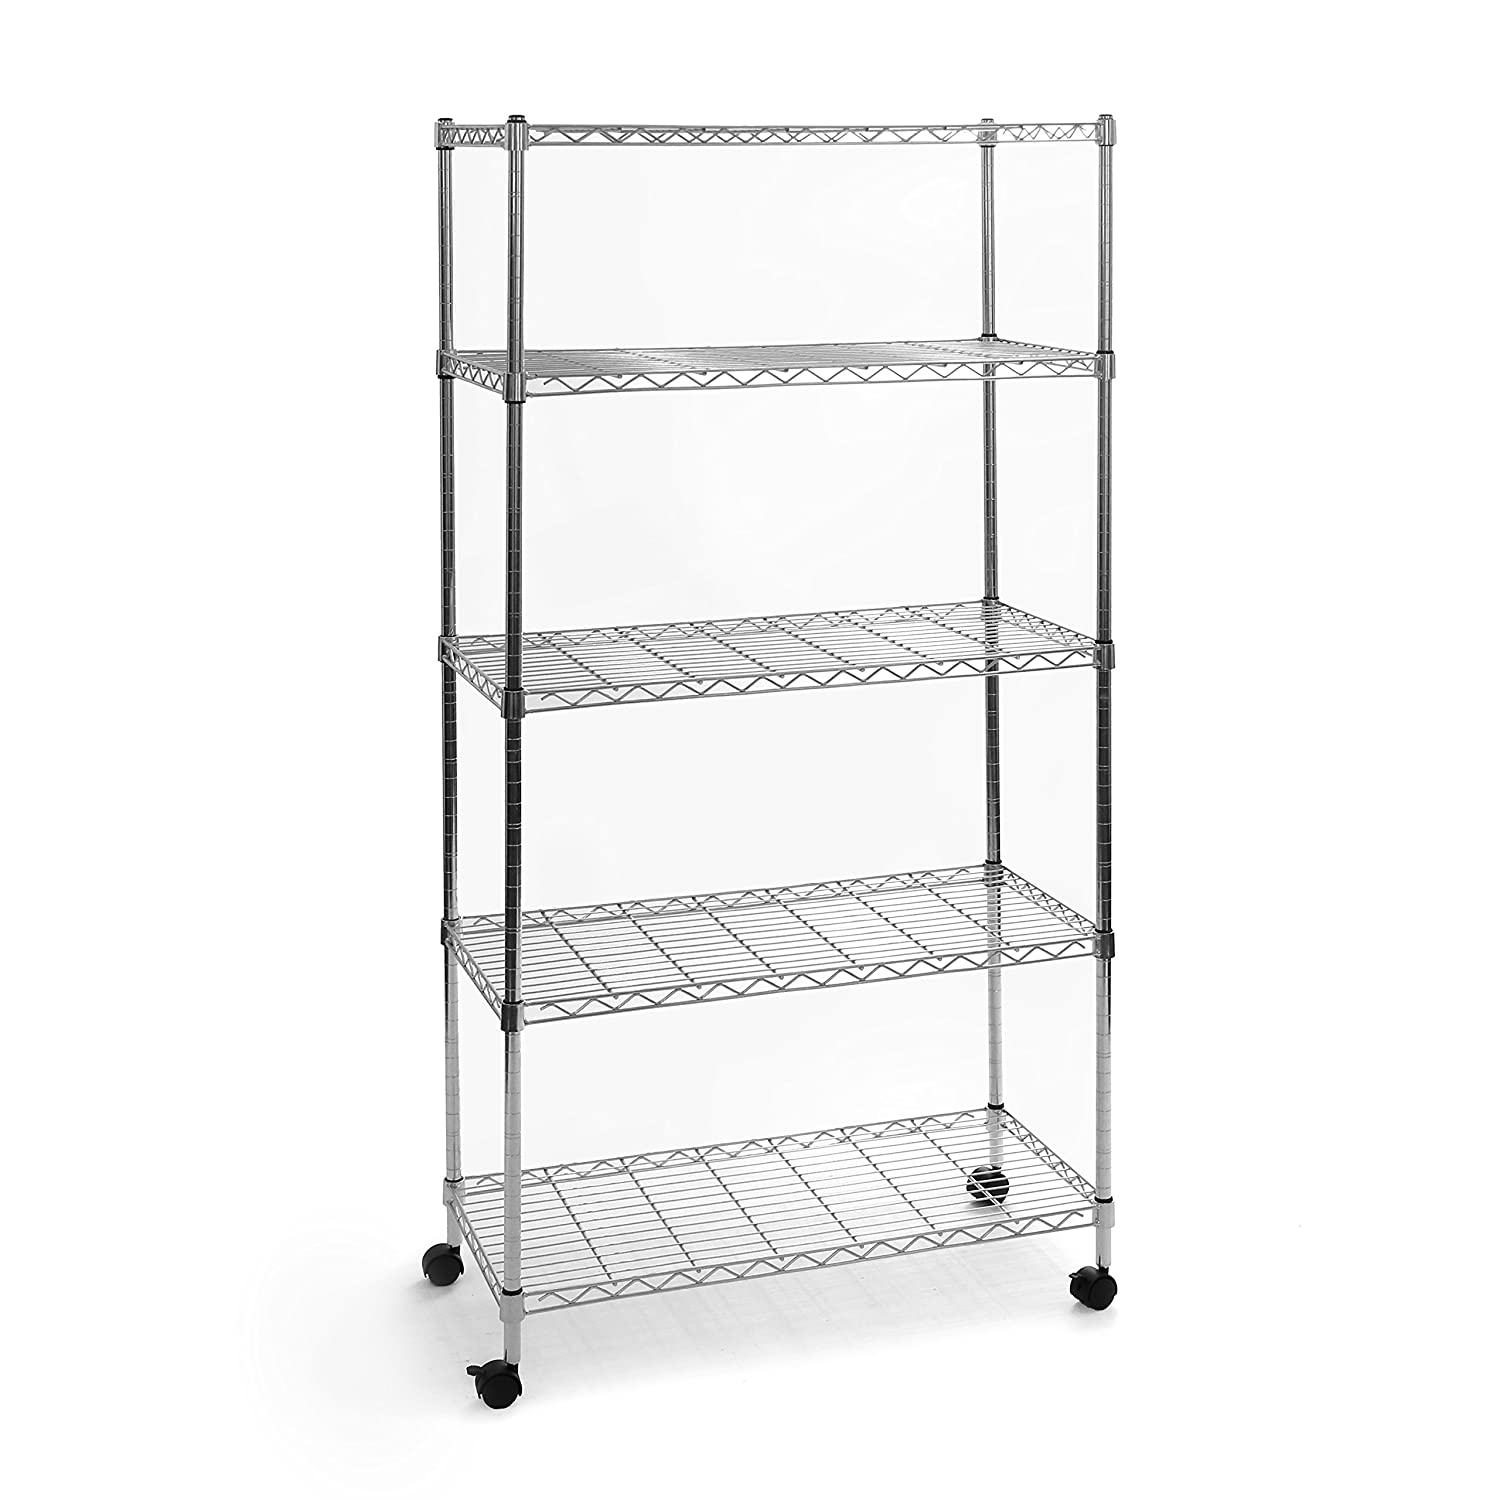 Amazon.com: Shelves & Racks - Food Service Equipment & Supplies ...